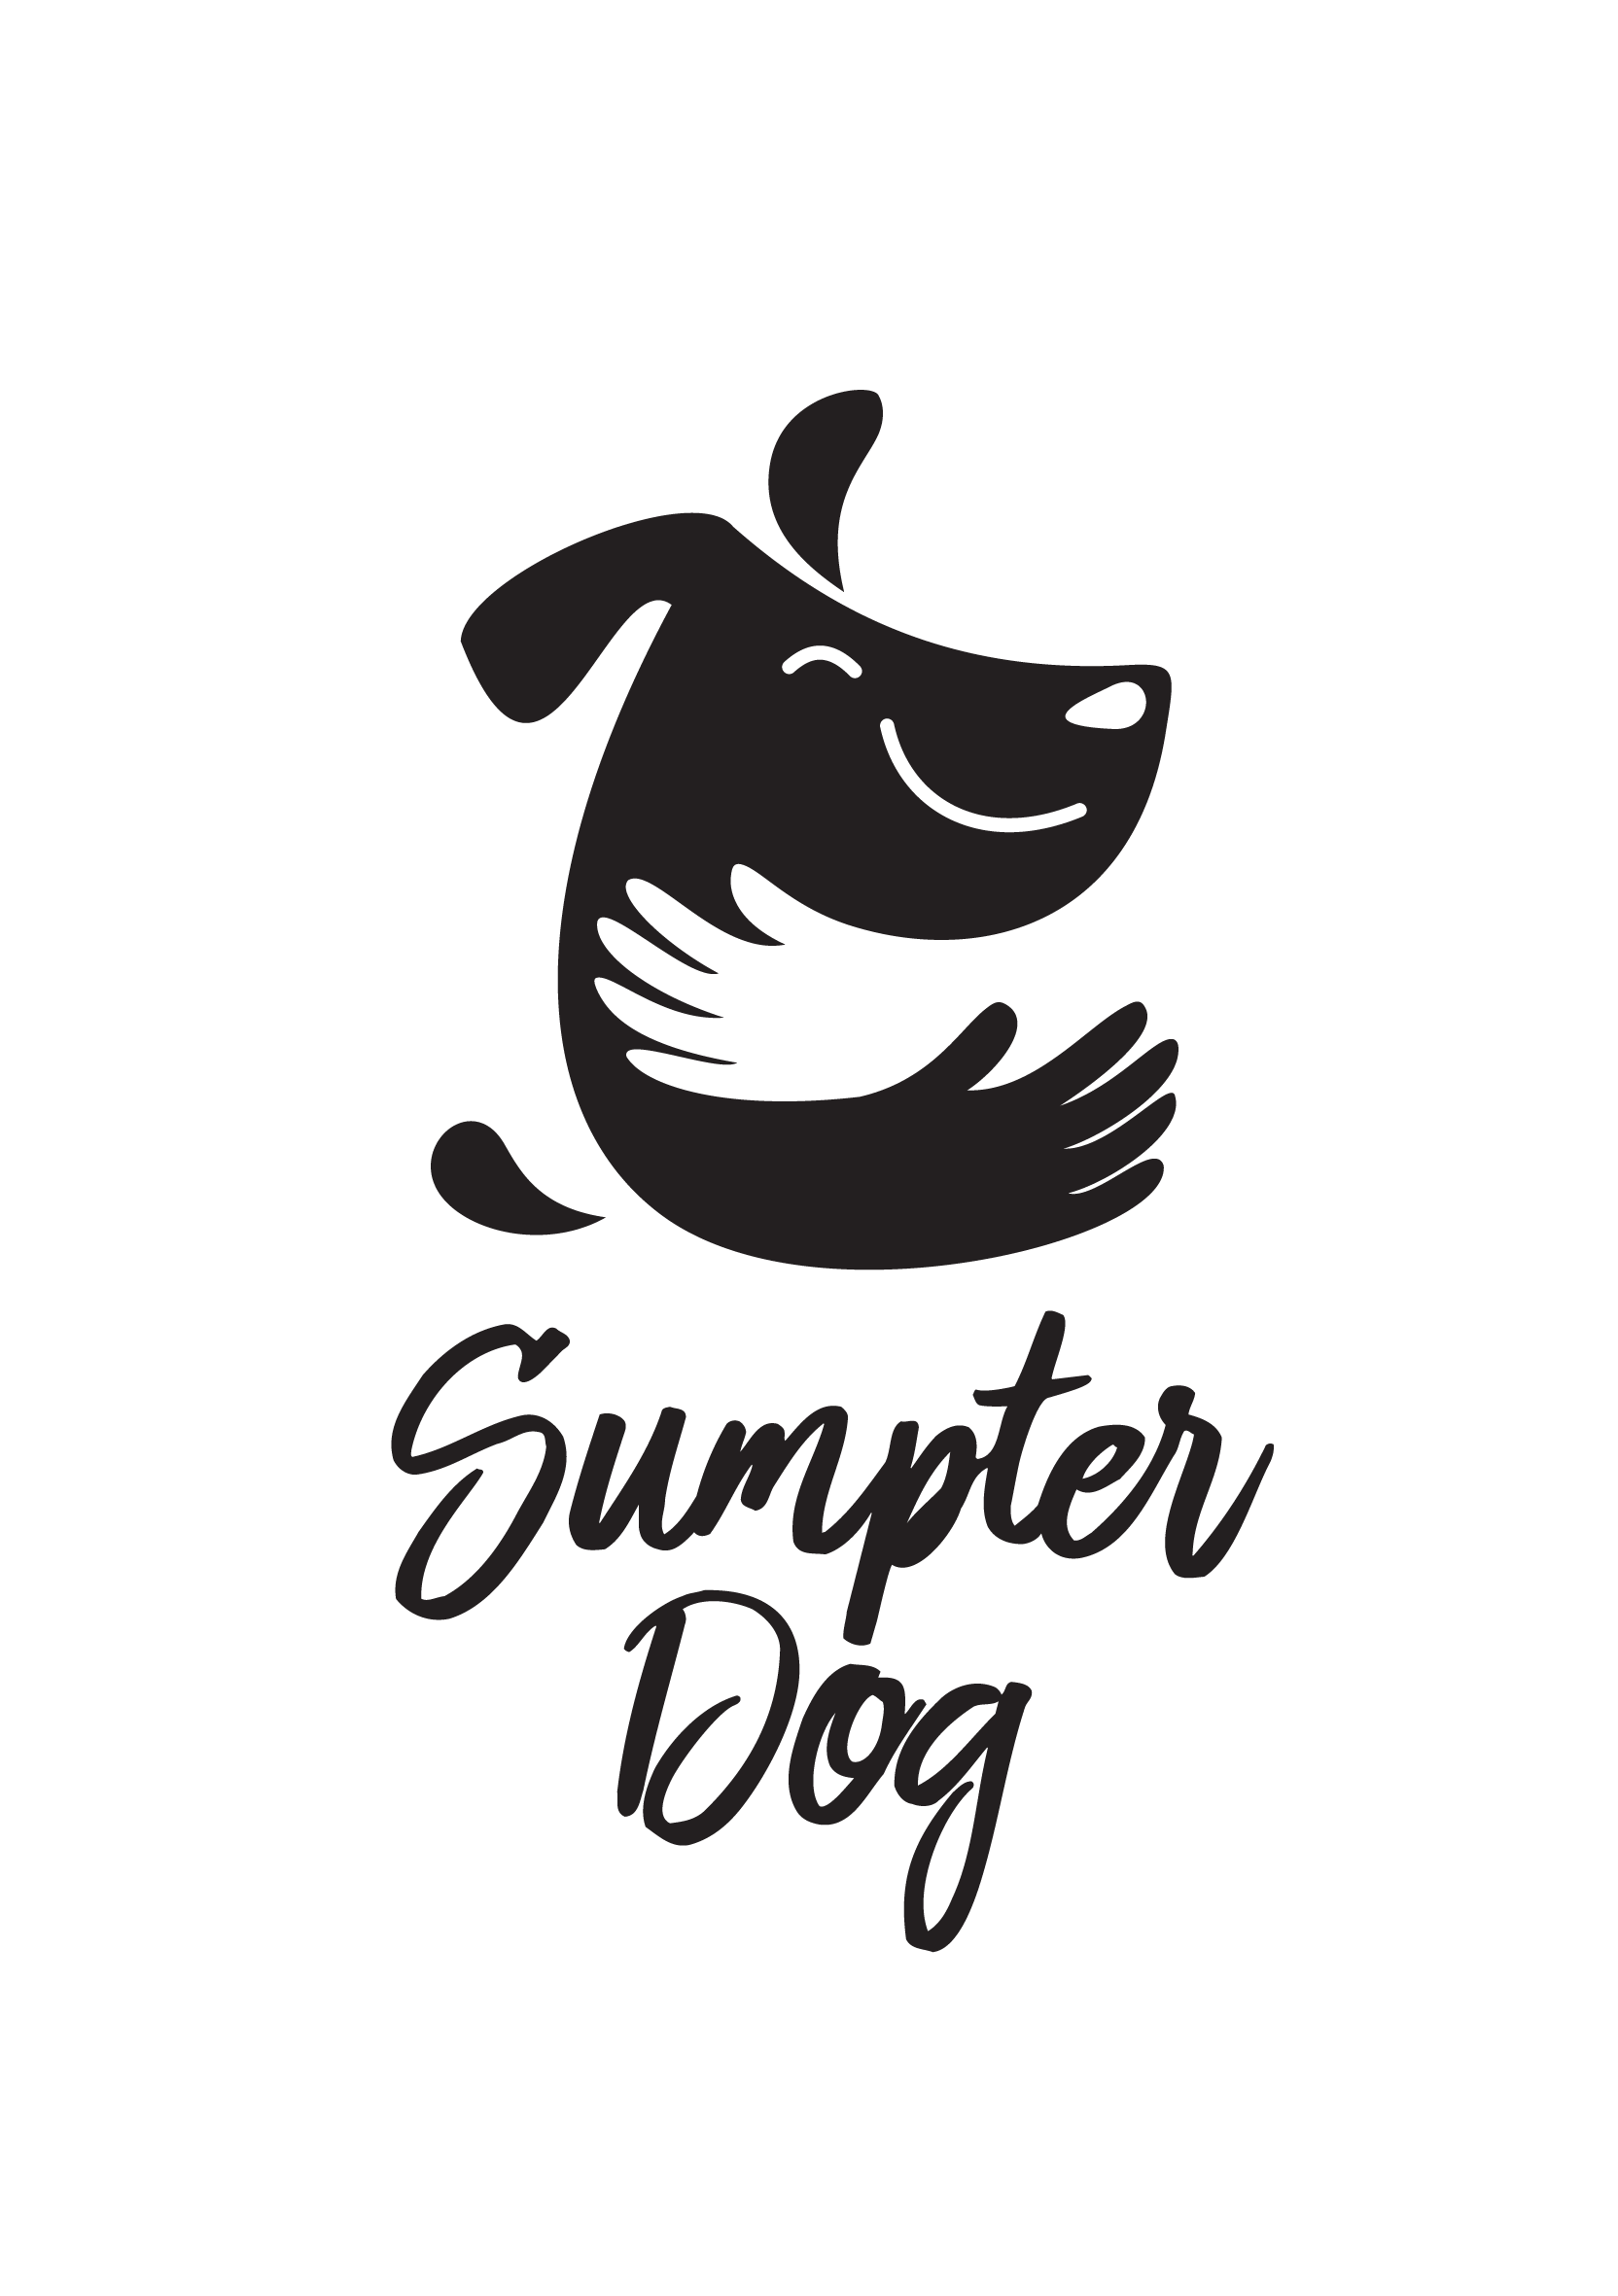 Create a simple and fun logo for people who love dogs!